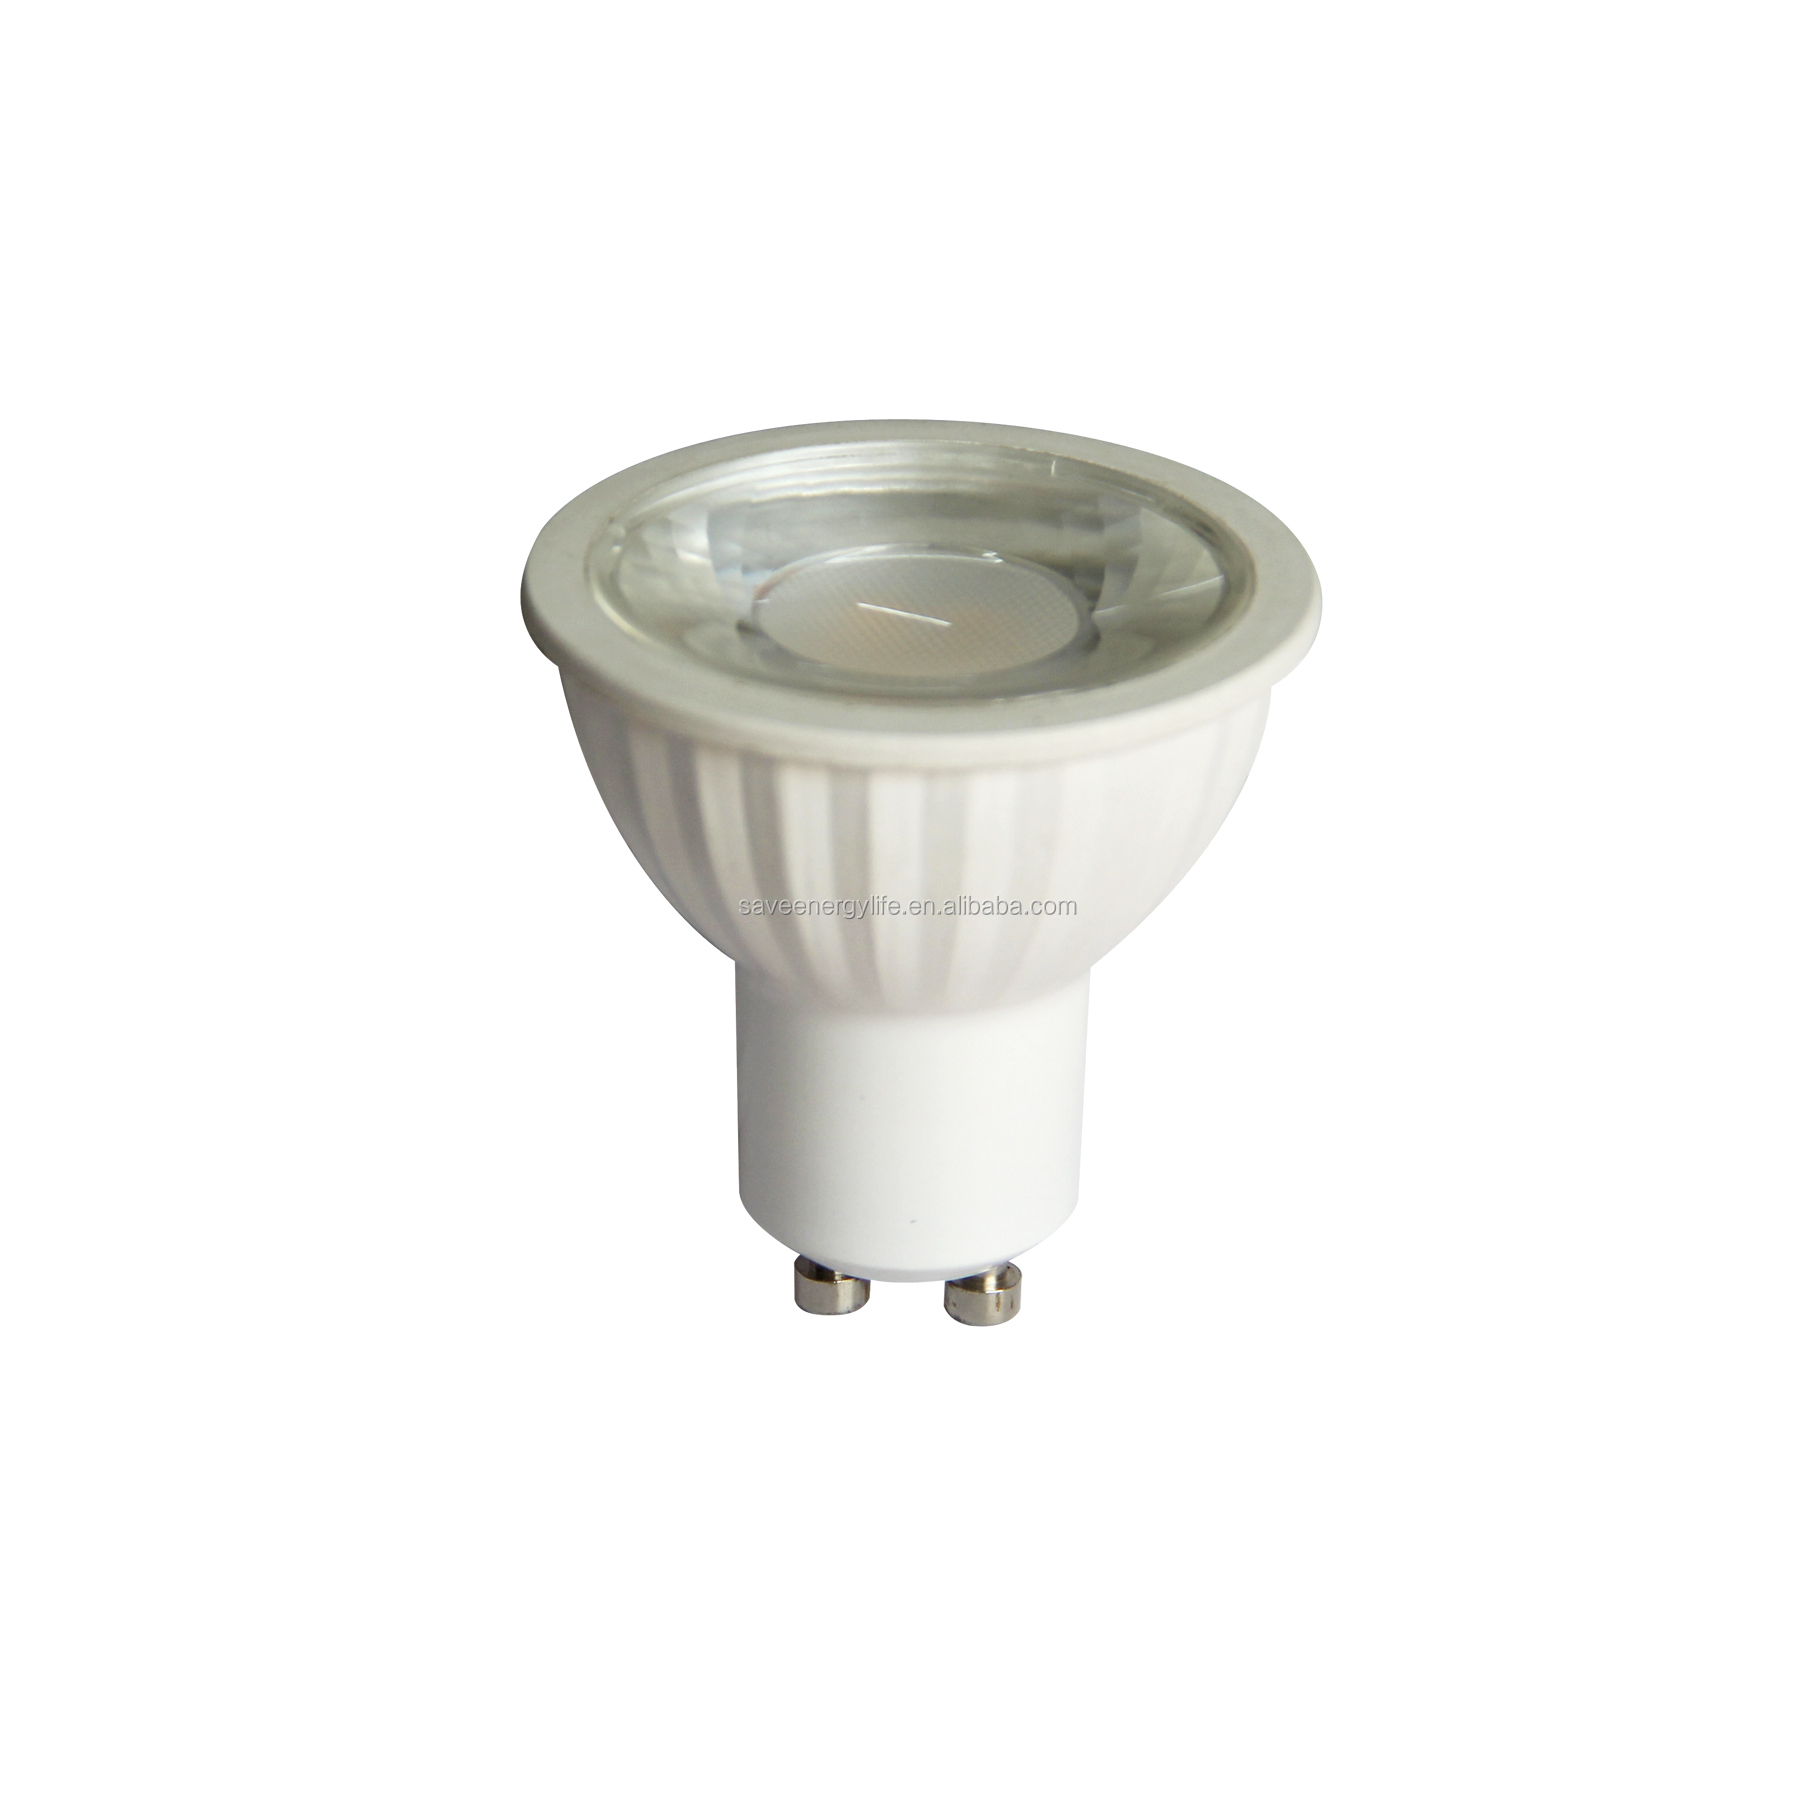 Led Spot Gu10 Gu10 Asda Gu10 Led Spot Light 5w Gu10 Daylight Gu10 C Led Buy Gu10 C Led Indoor Gu10 C Led Mini Gu10 C Led Product On Alibaba